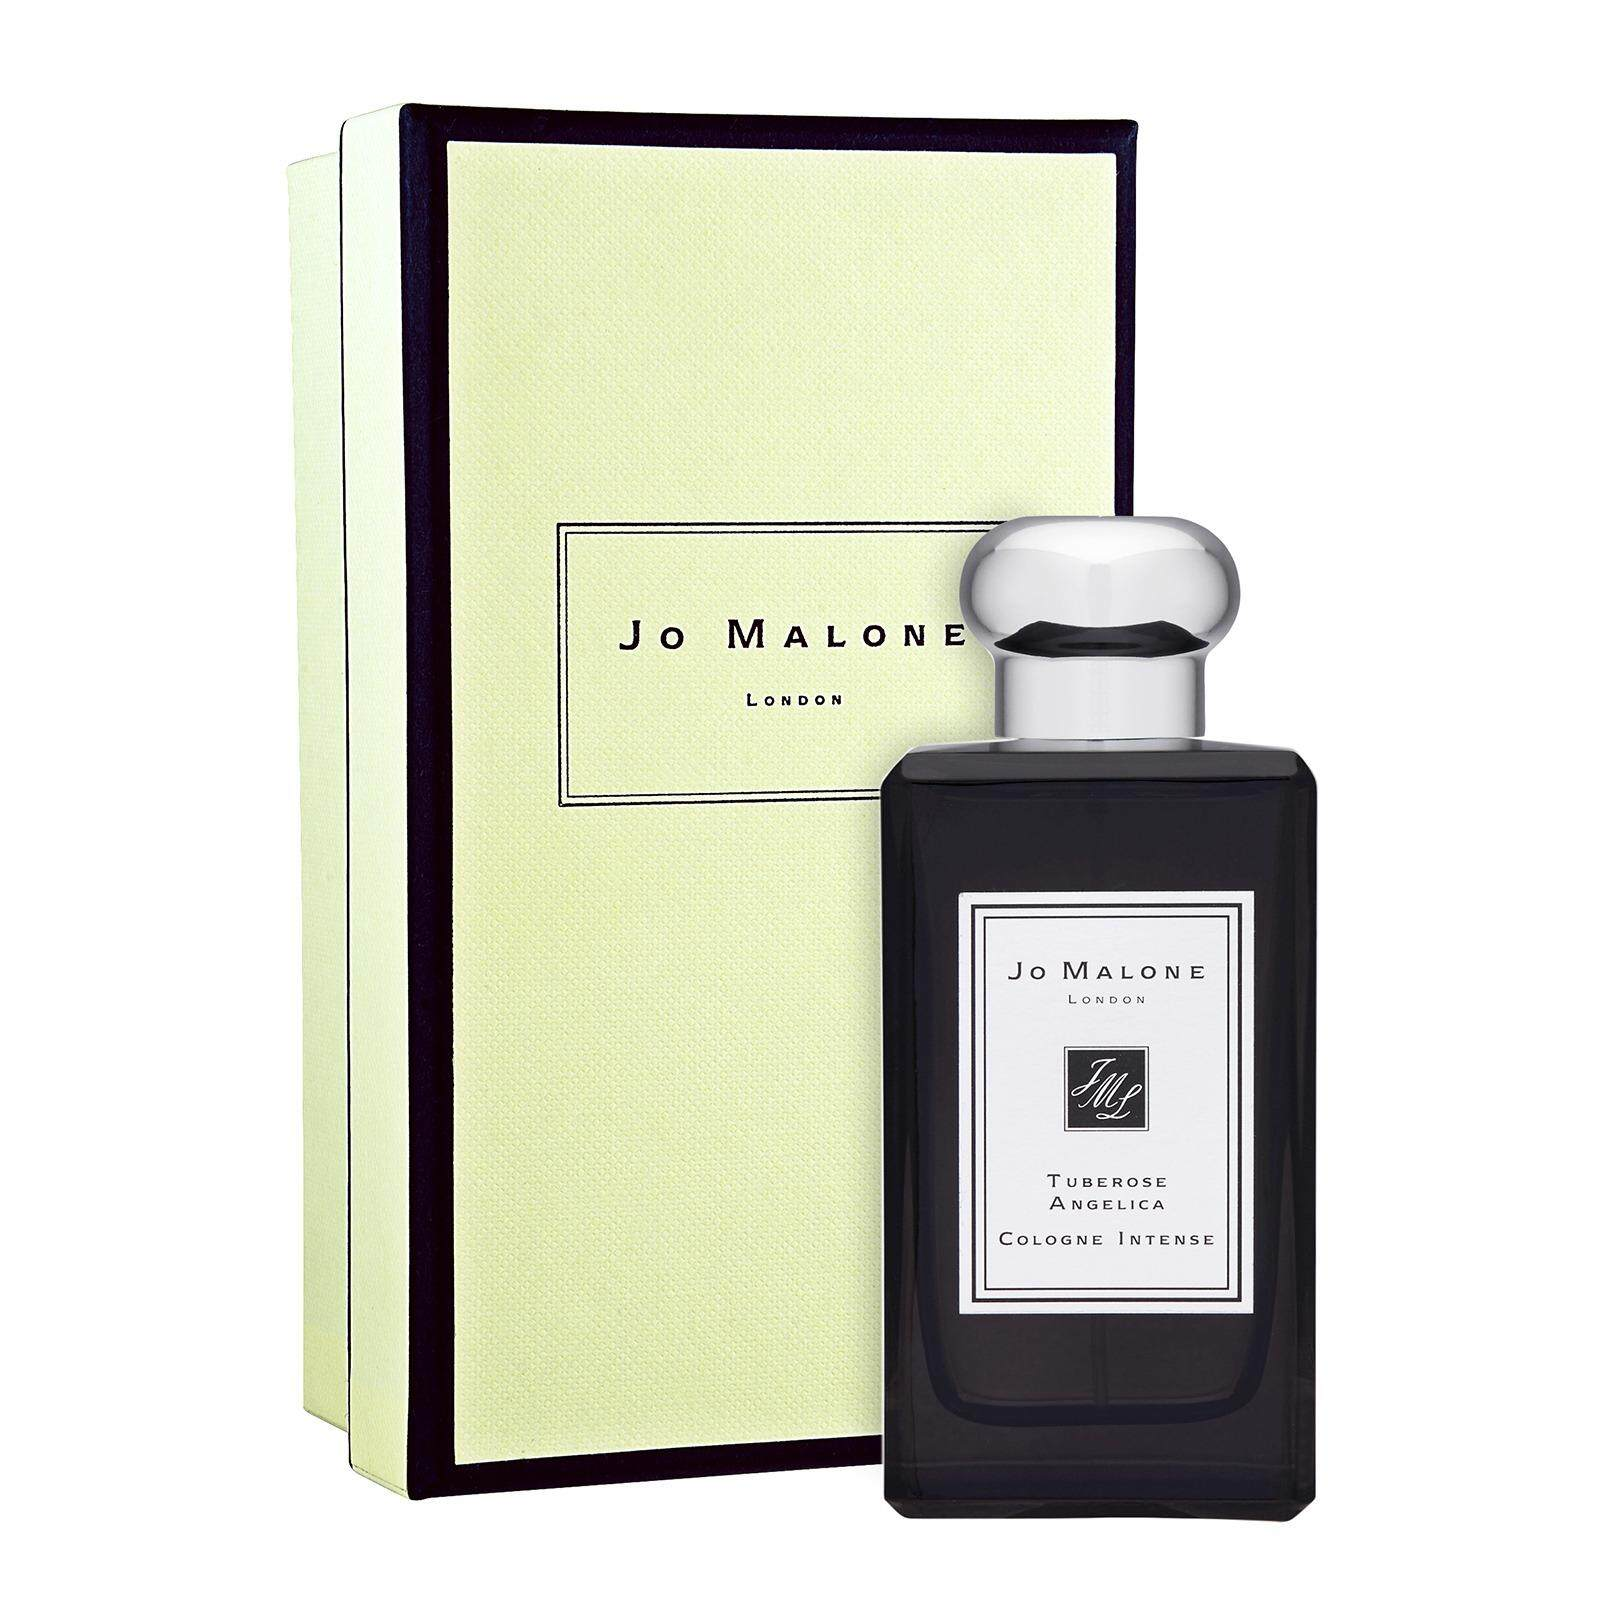 Fitur Zwitsal Baby Cologne Classic Fresh Floral 100ml Dan Harga Authentic Jo Malone Tuberose Angelica